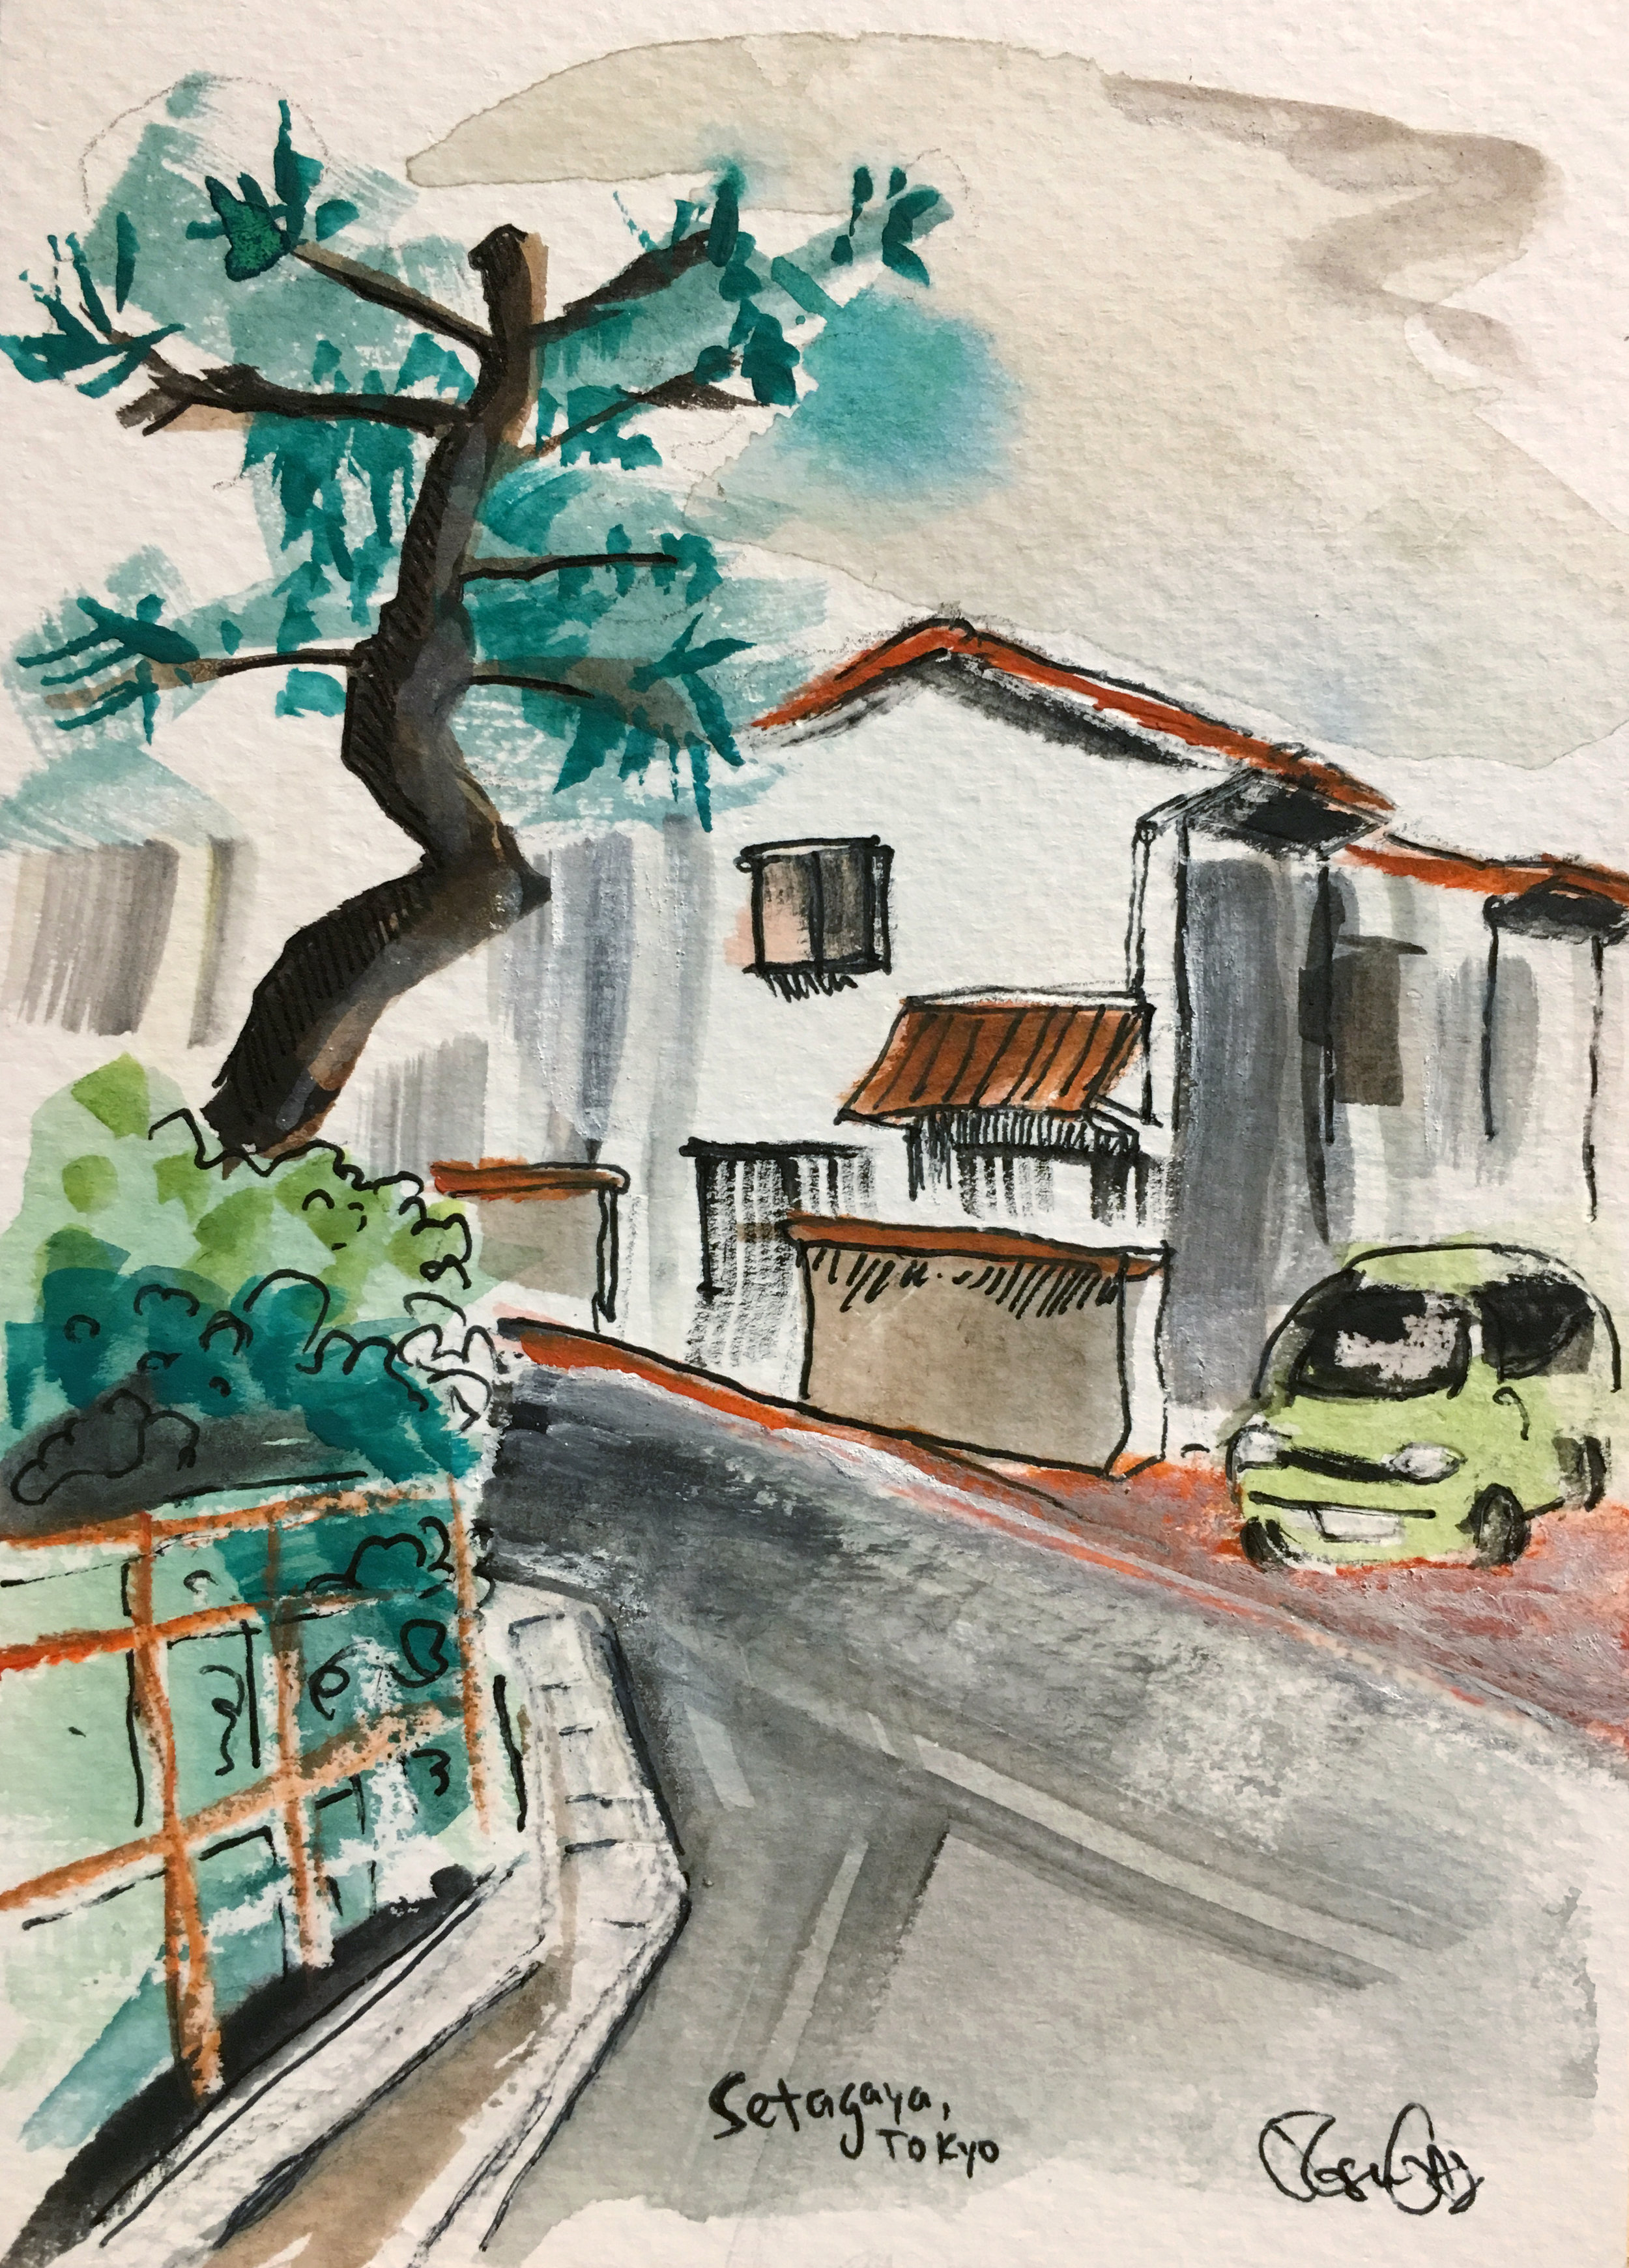 One of the billions of tiny winding streets in the neighborhood in Tokyo where we stayed. Watercolor, ink and gouache.